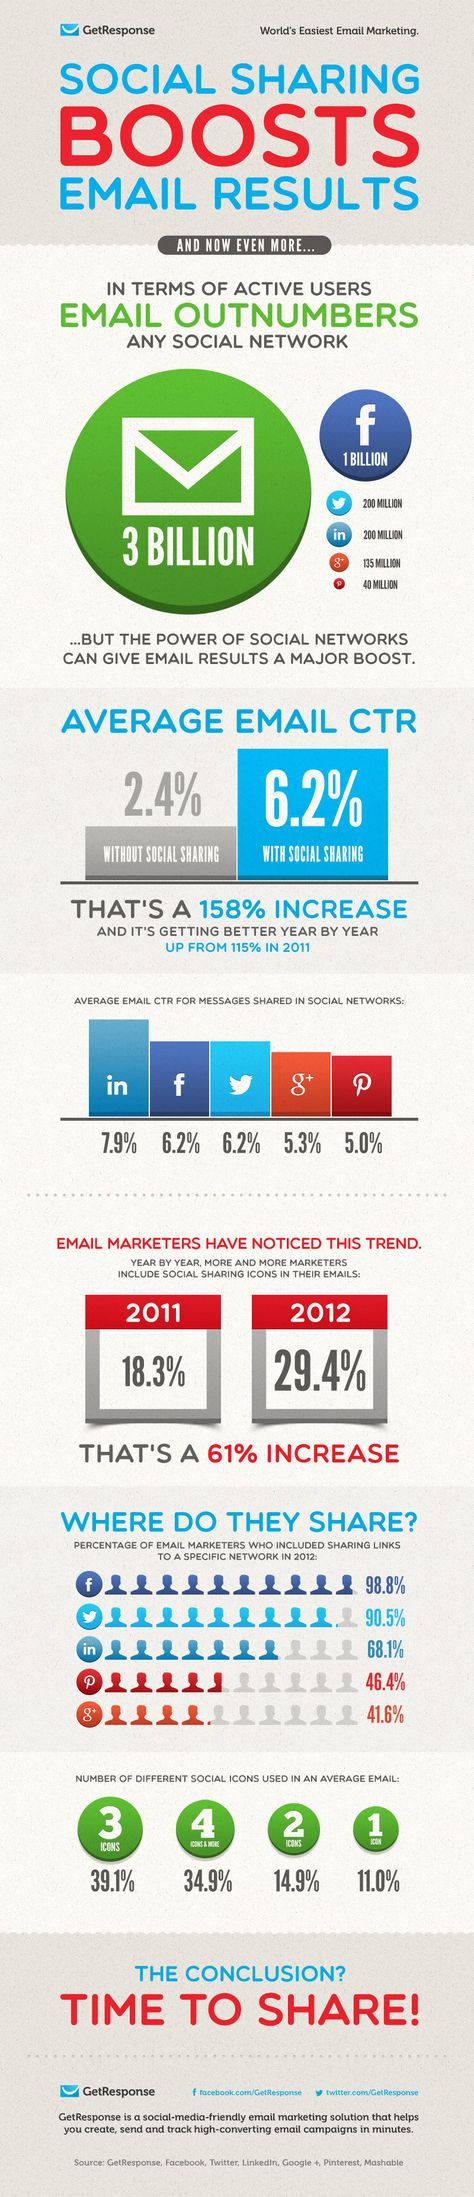 Social Sharing Boosts Email Results